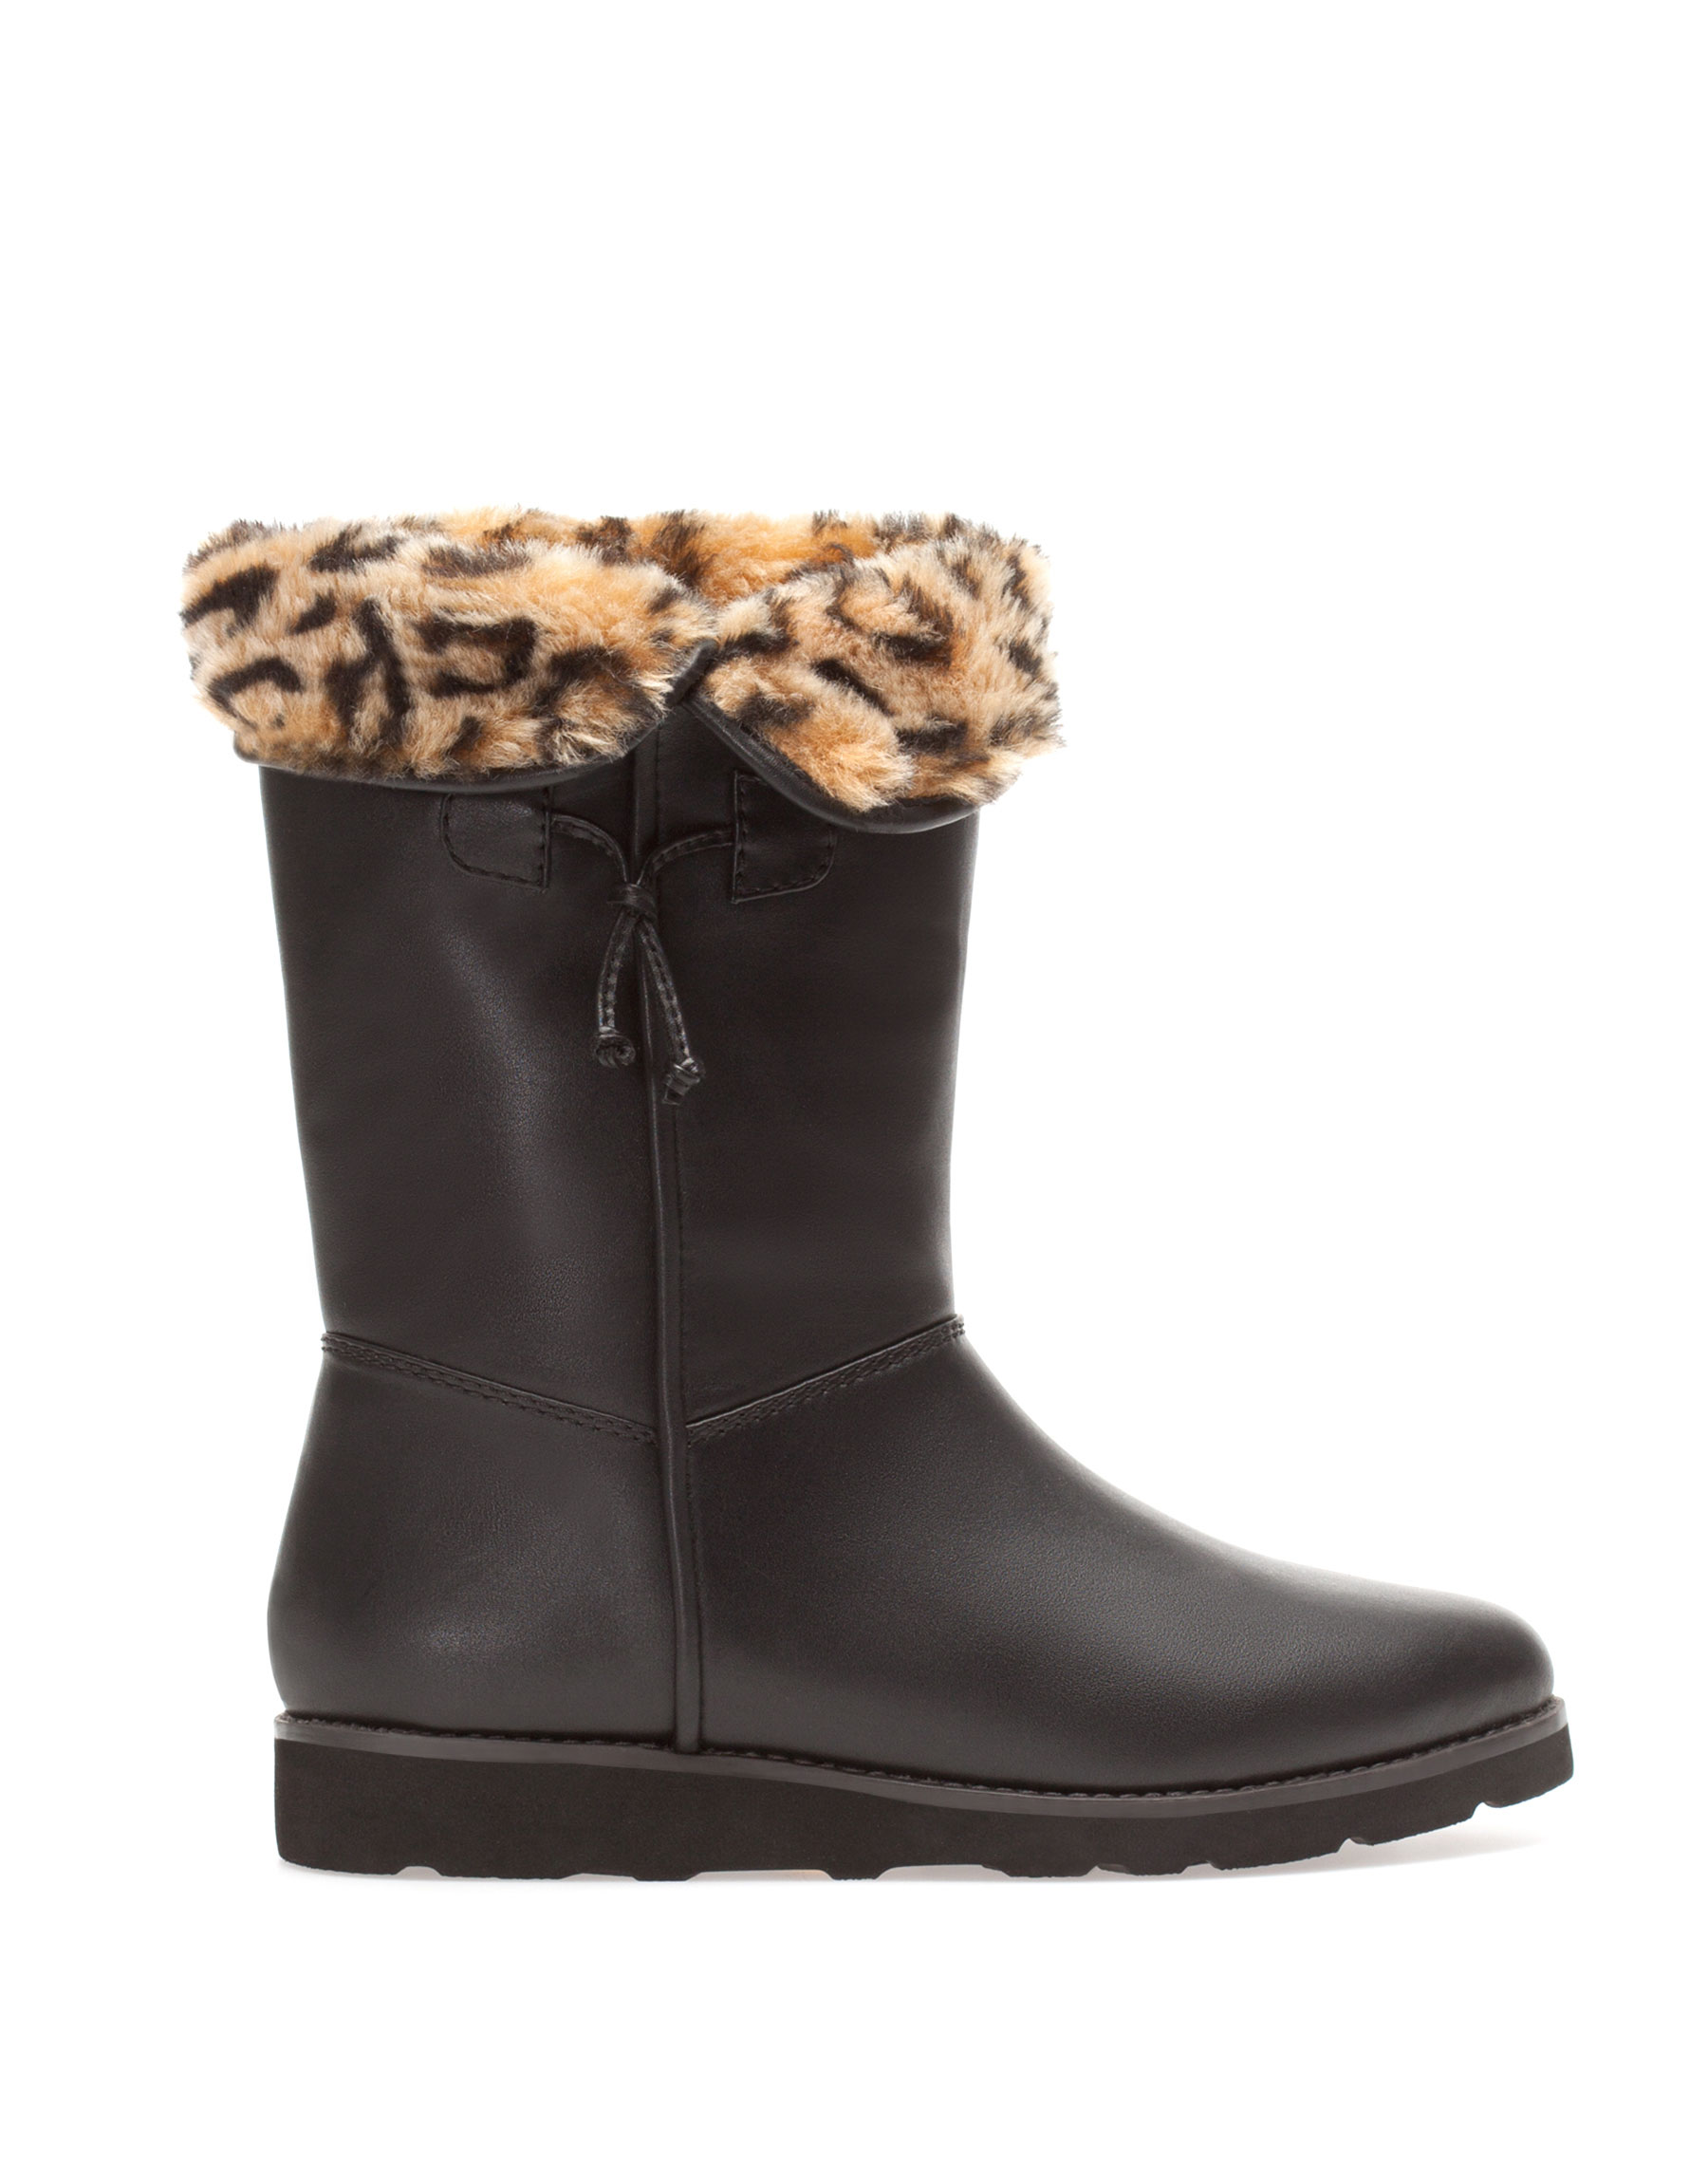 Pull Amp Bear Leopard Print Boots In Brown Black Lyst